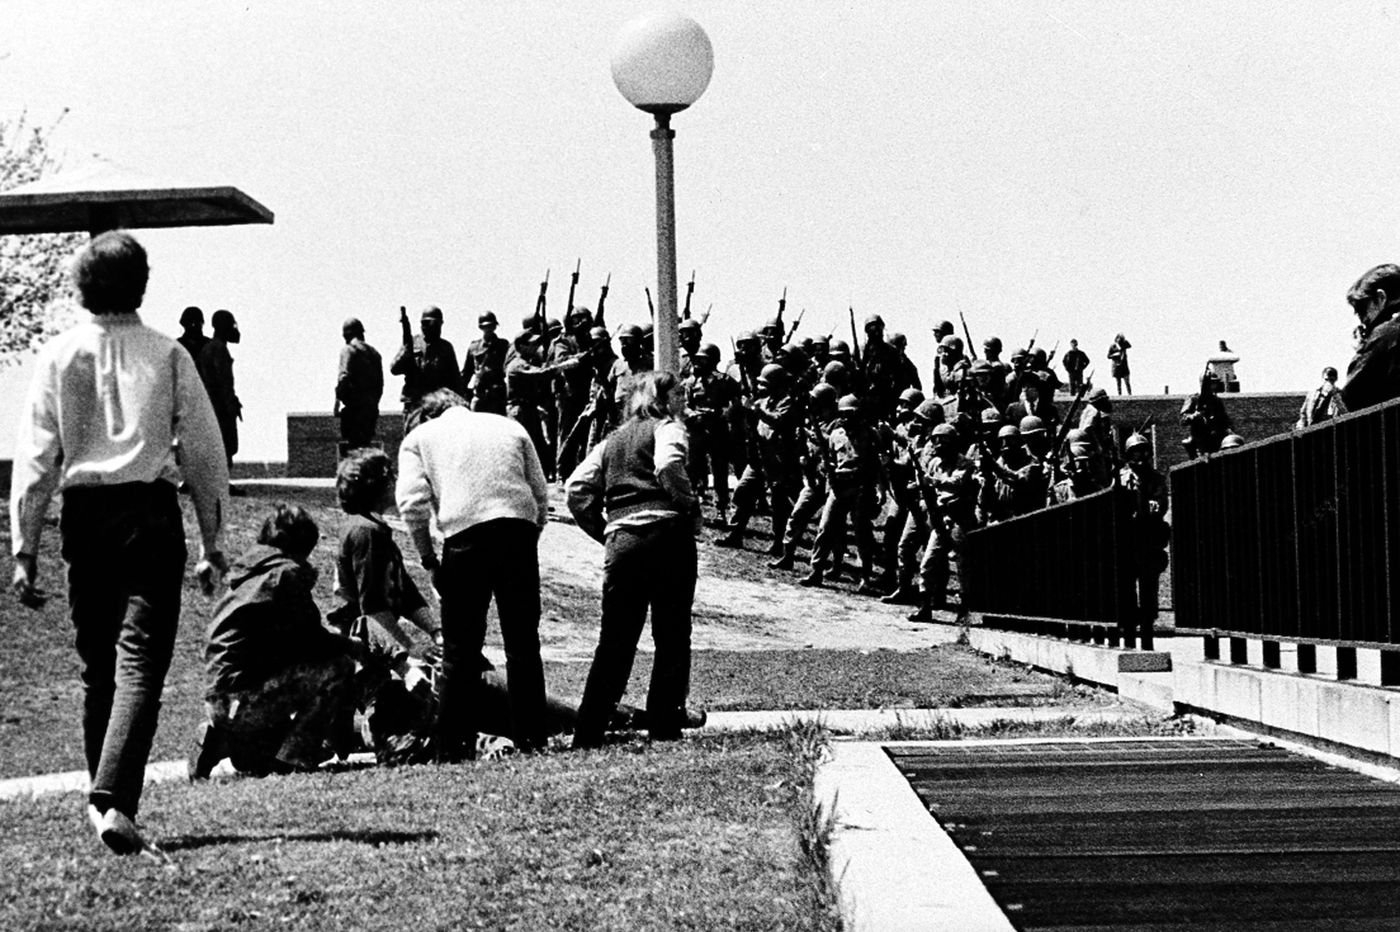 On the 50th anniversary, America's still not fully recovered from the wounds of Kent State   Will Bunch